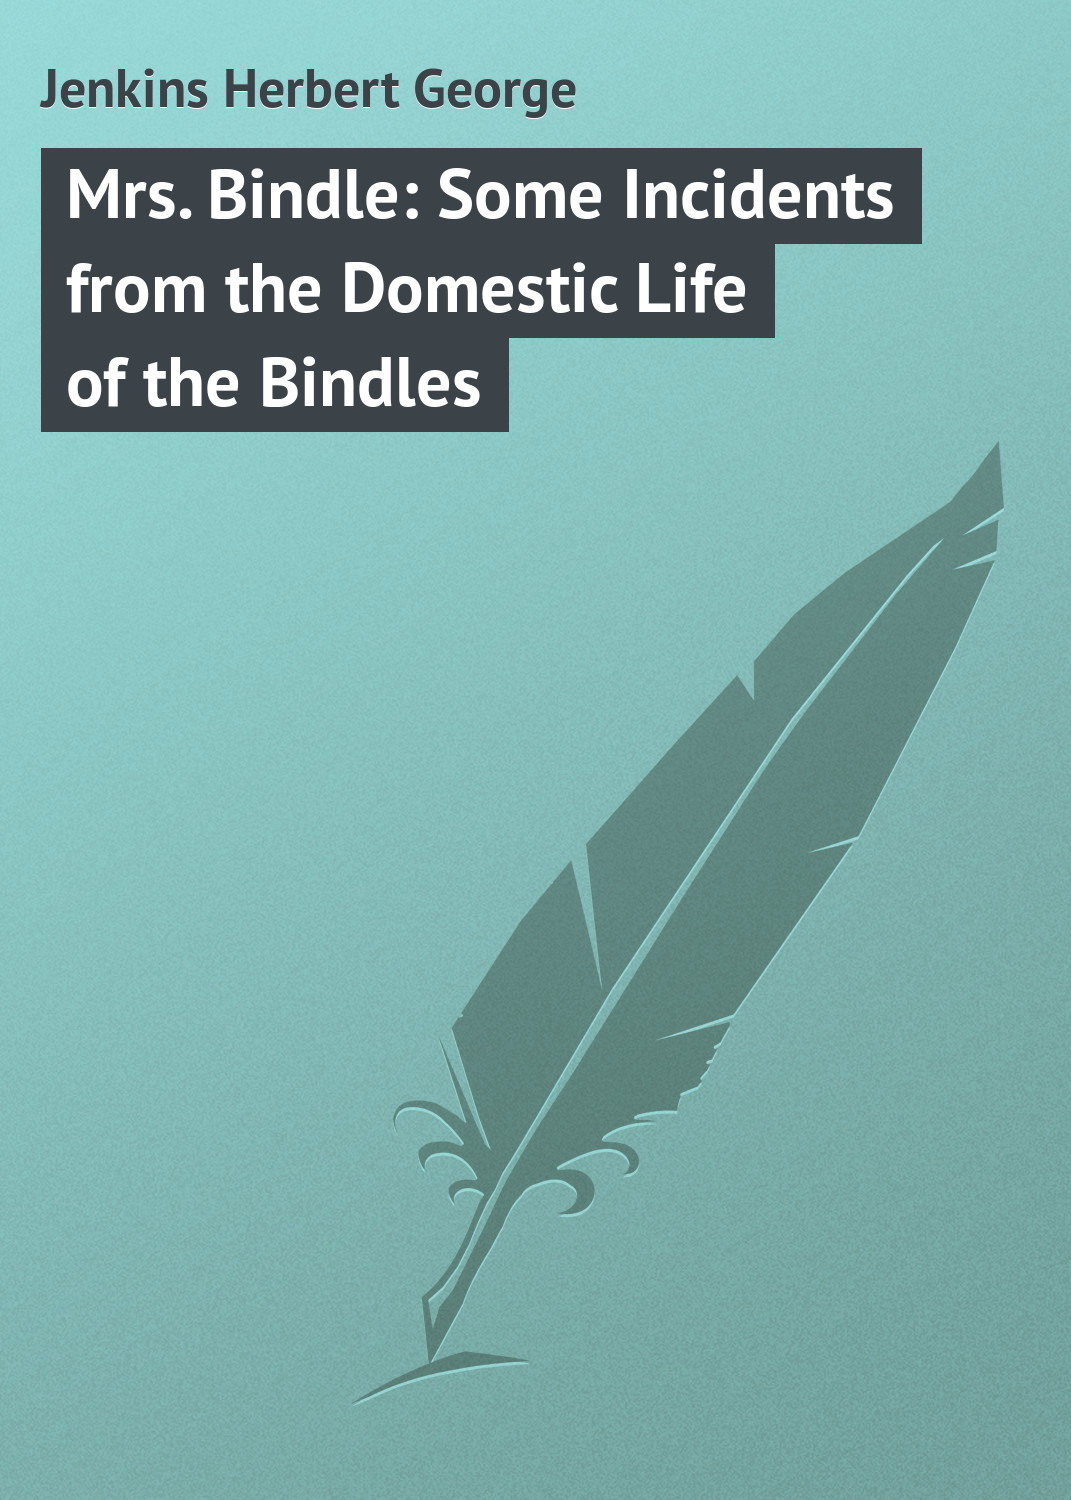 Jenkins Herbert George Mrs. Bindle: Some Incidents from the Domestic Life of the Bindles